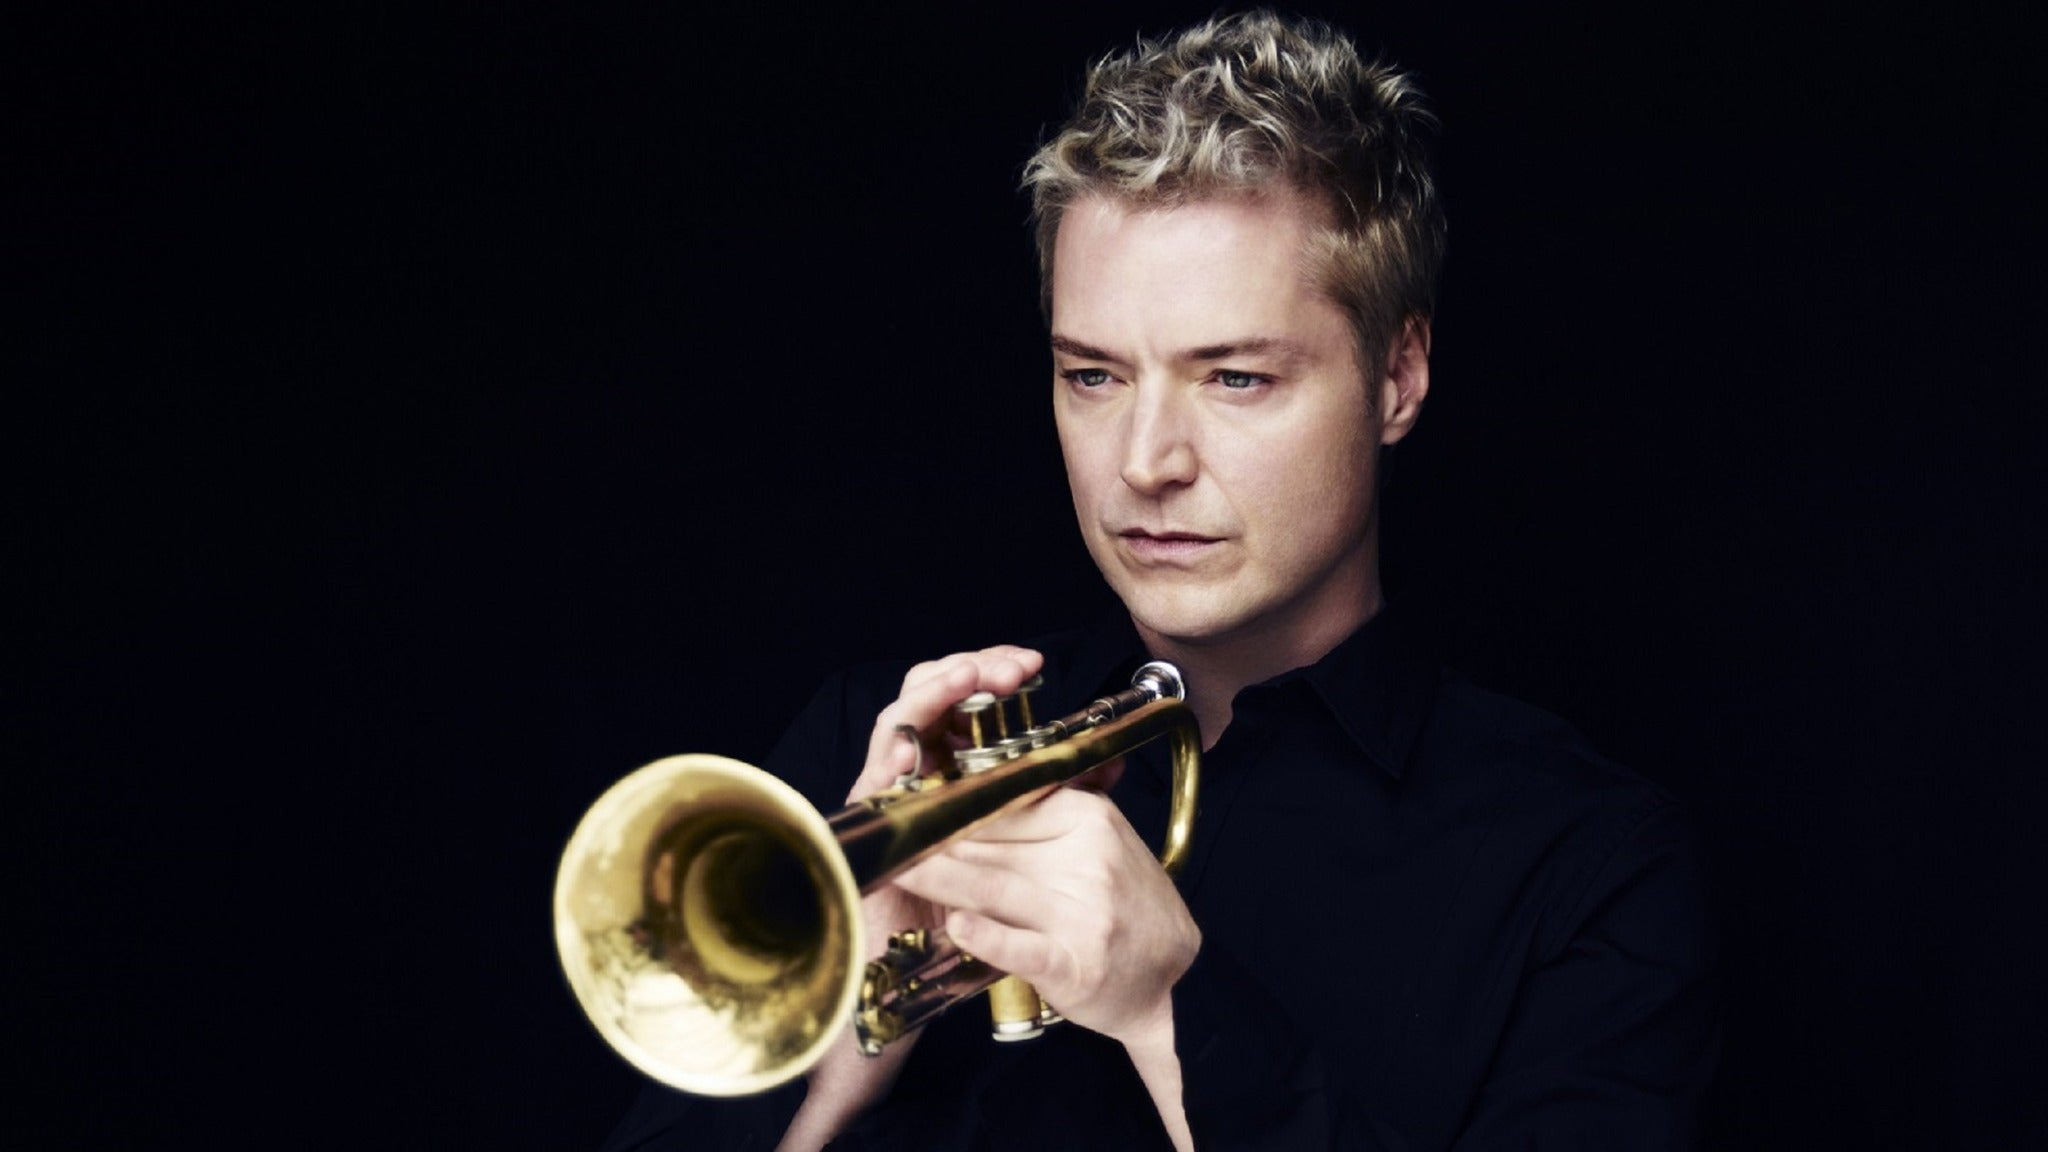 Chris Botti with Atlanta Symphony Orchestra